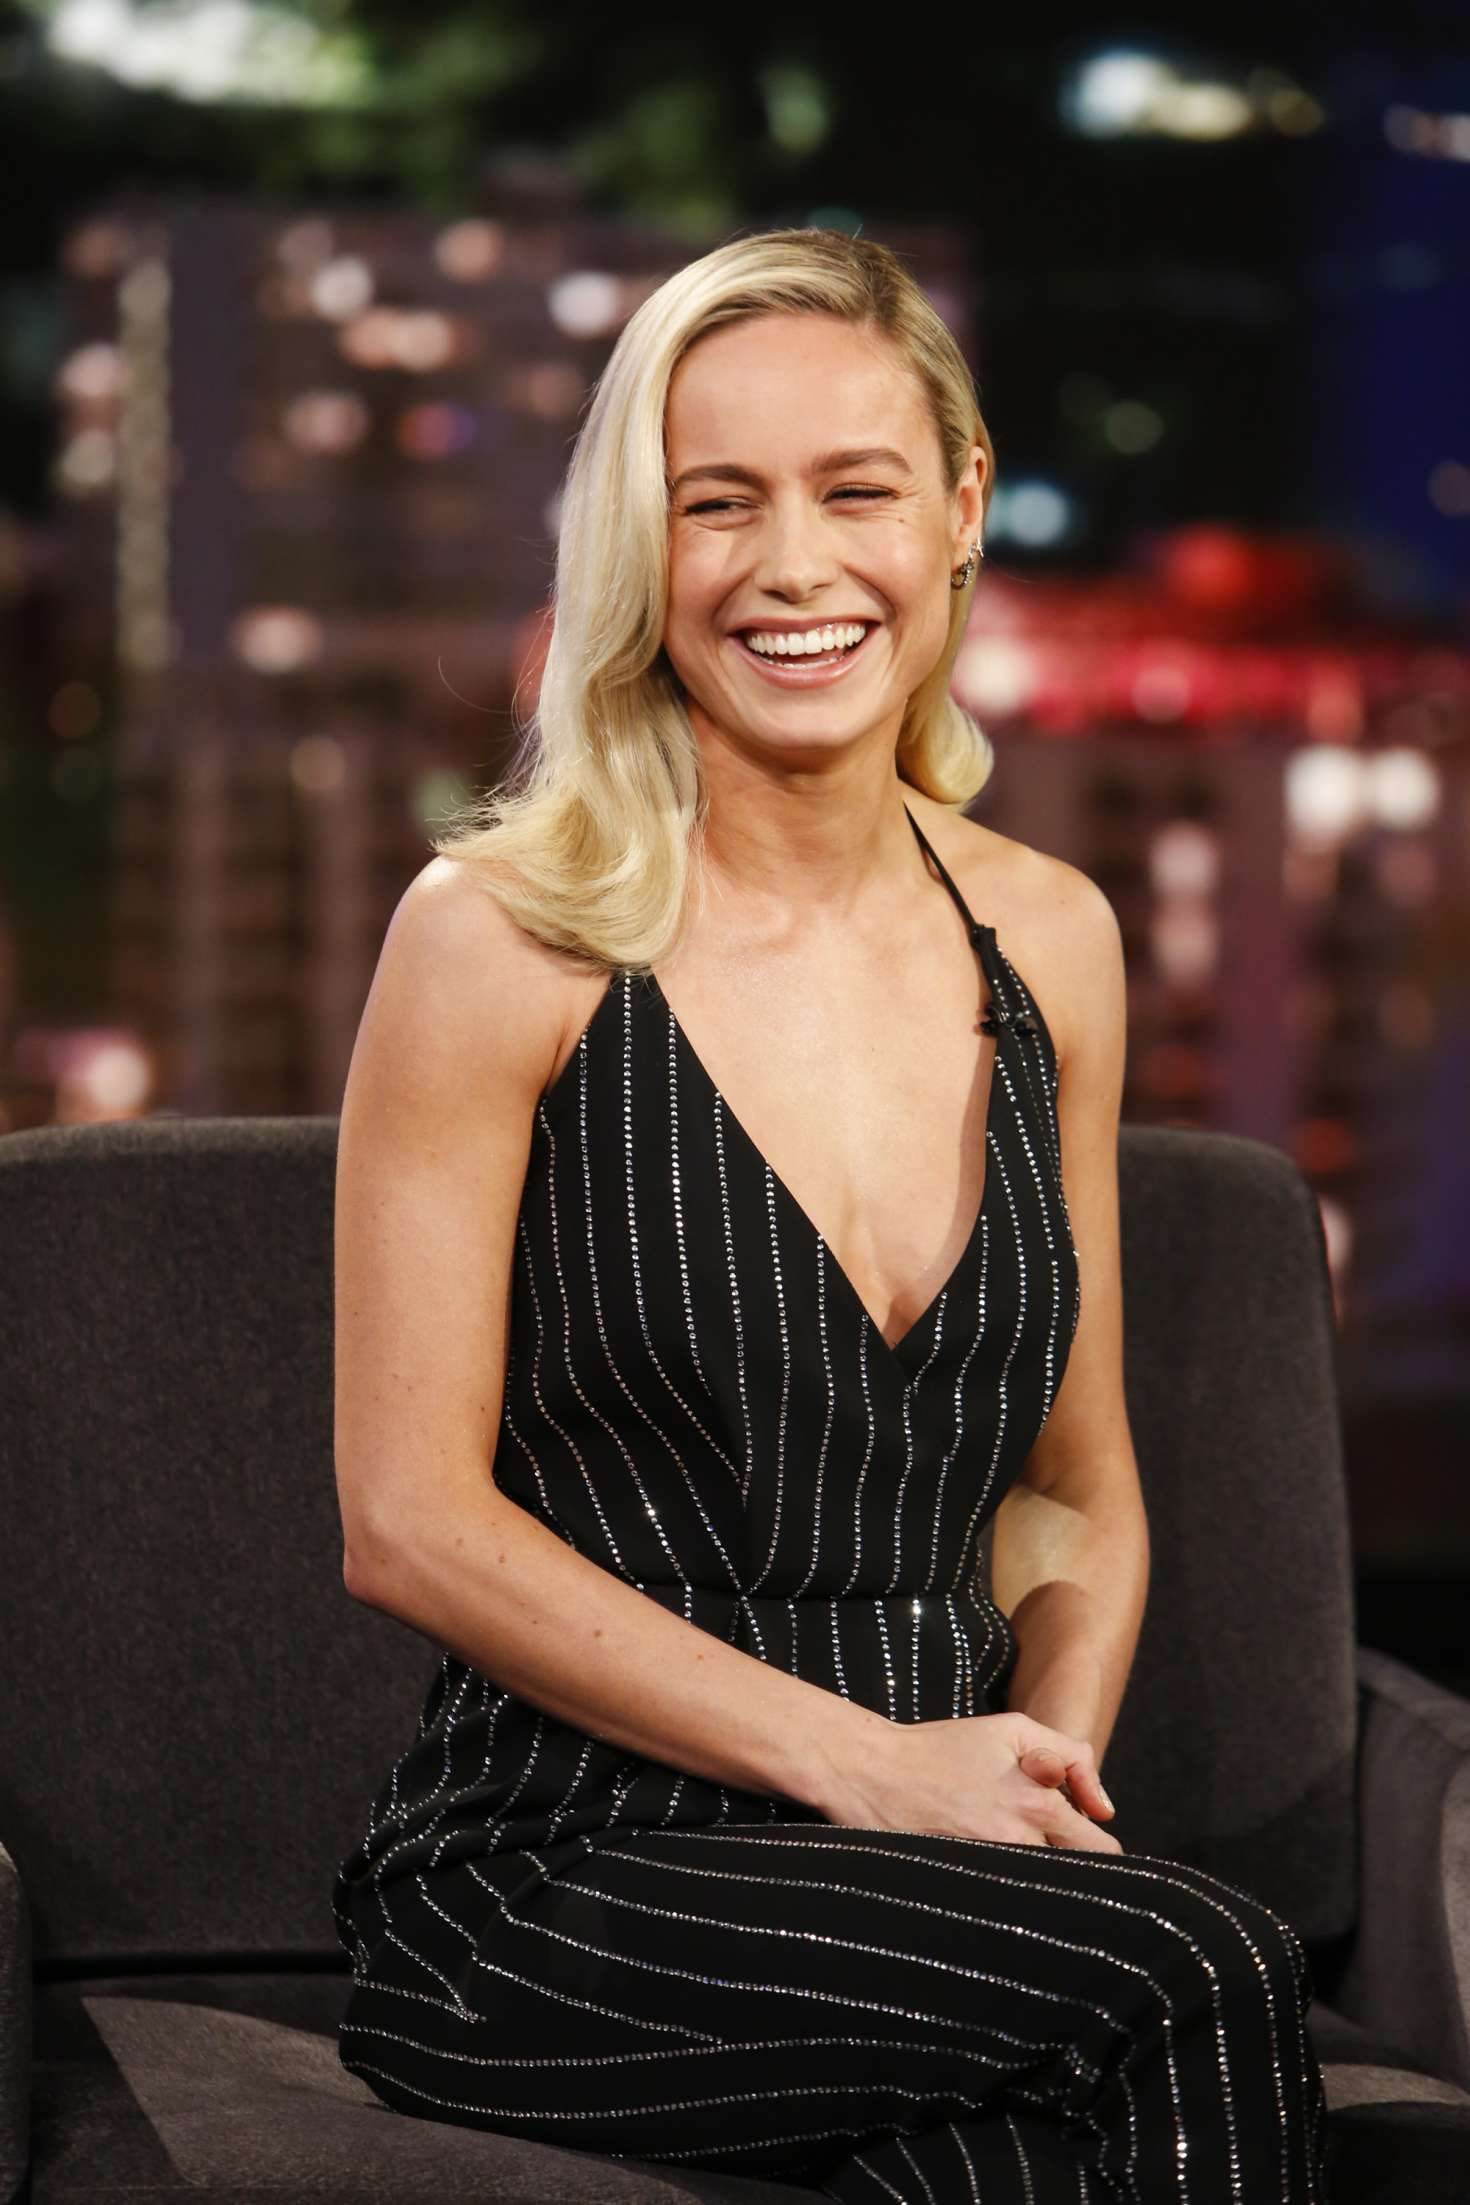 Brie Larson - On Jimmy Kimmel Live! in Los Angeles